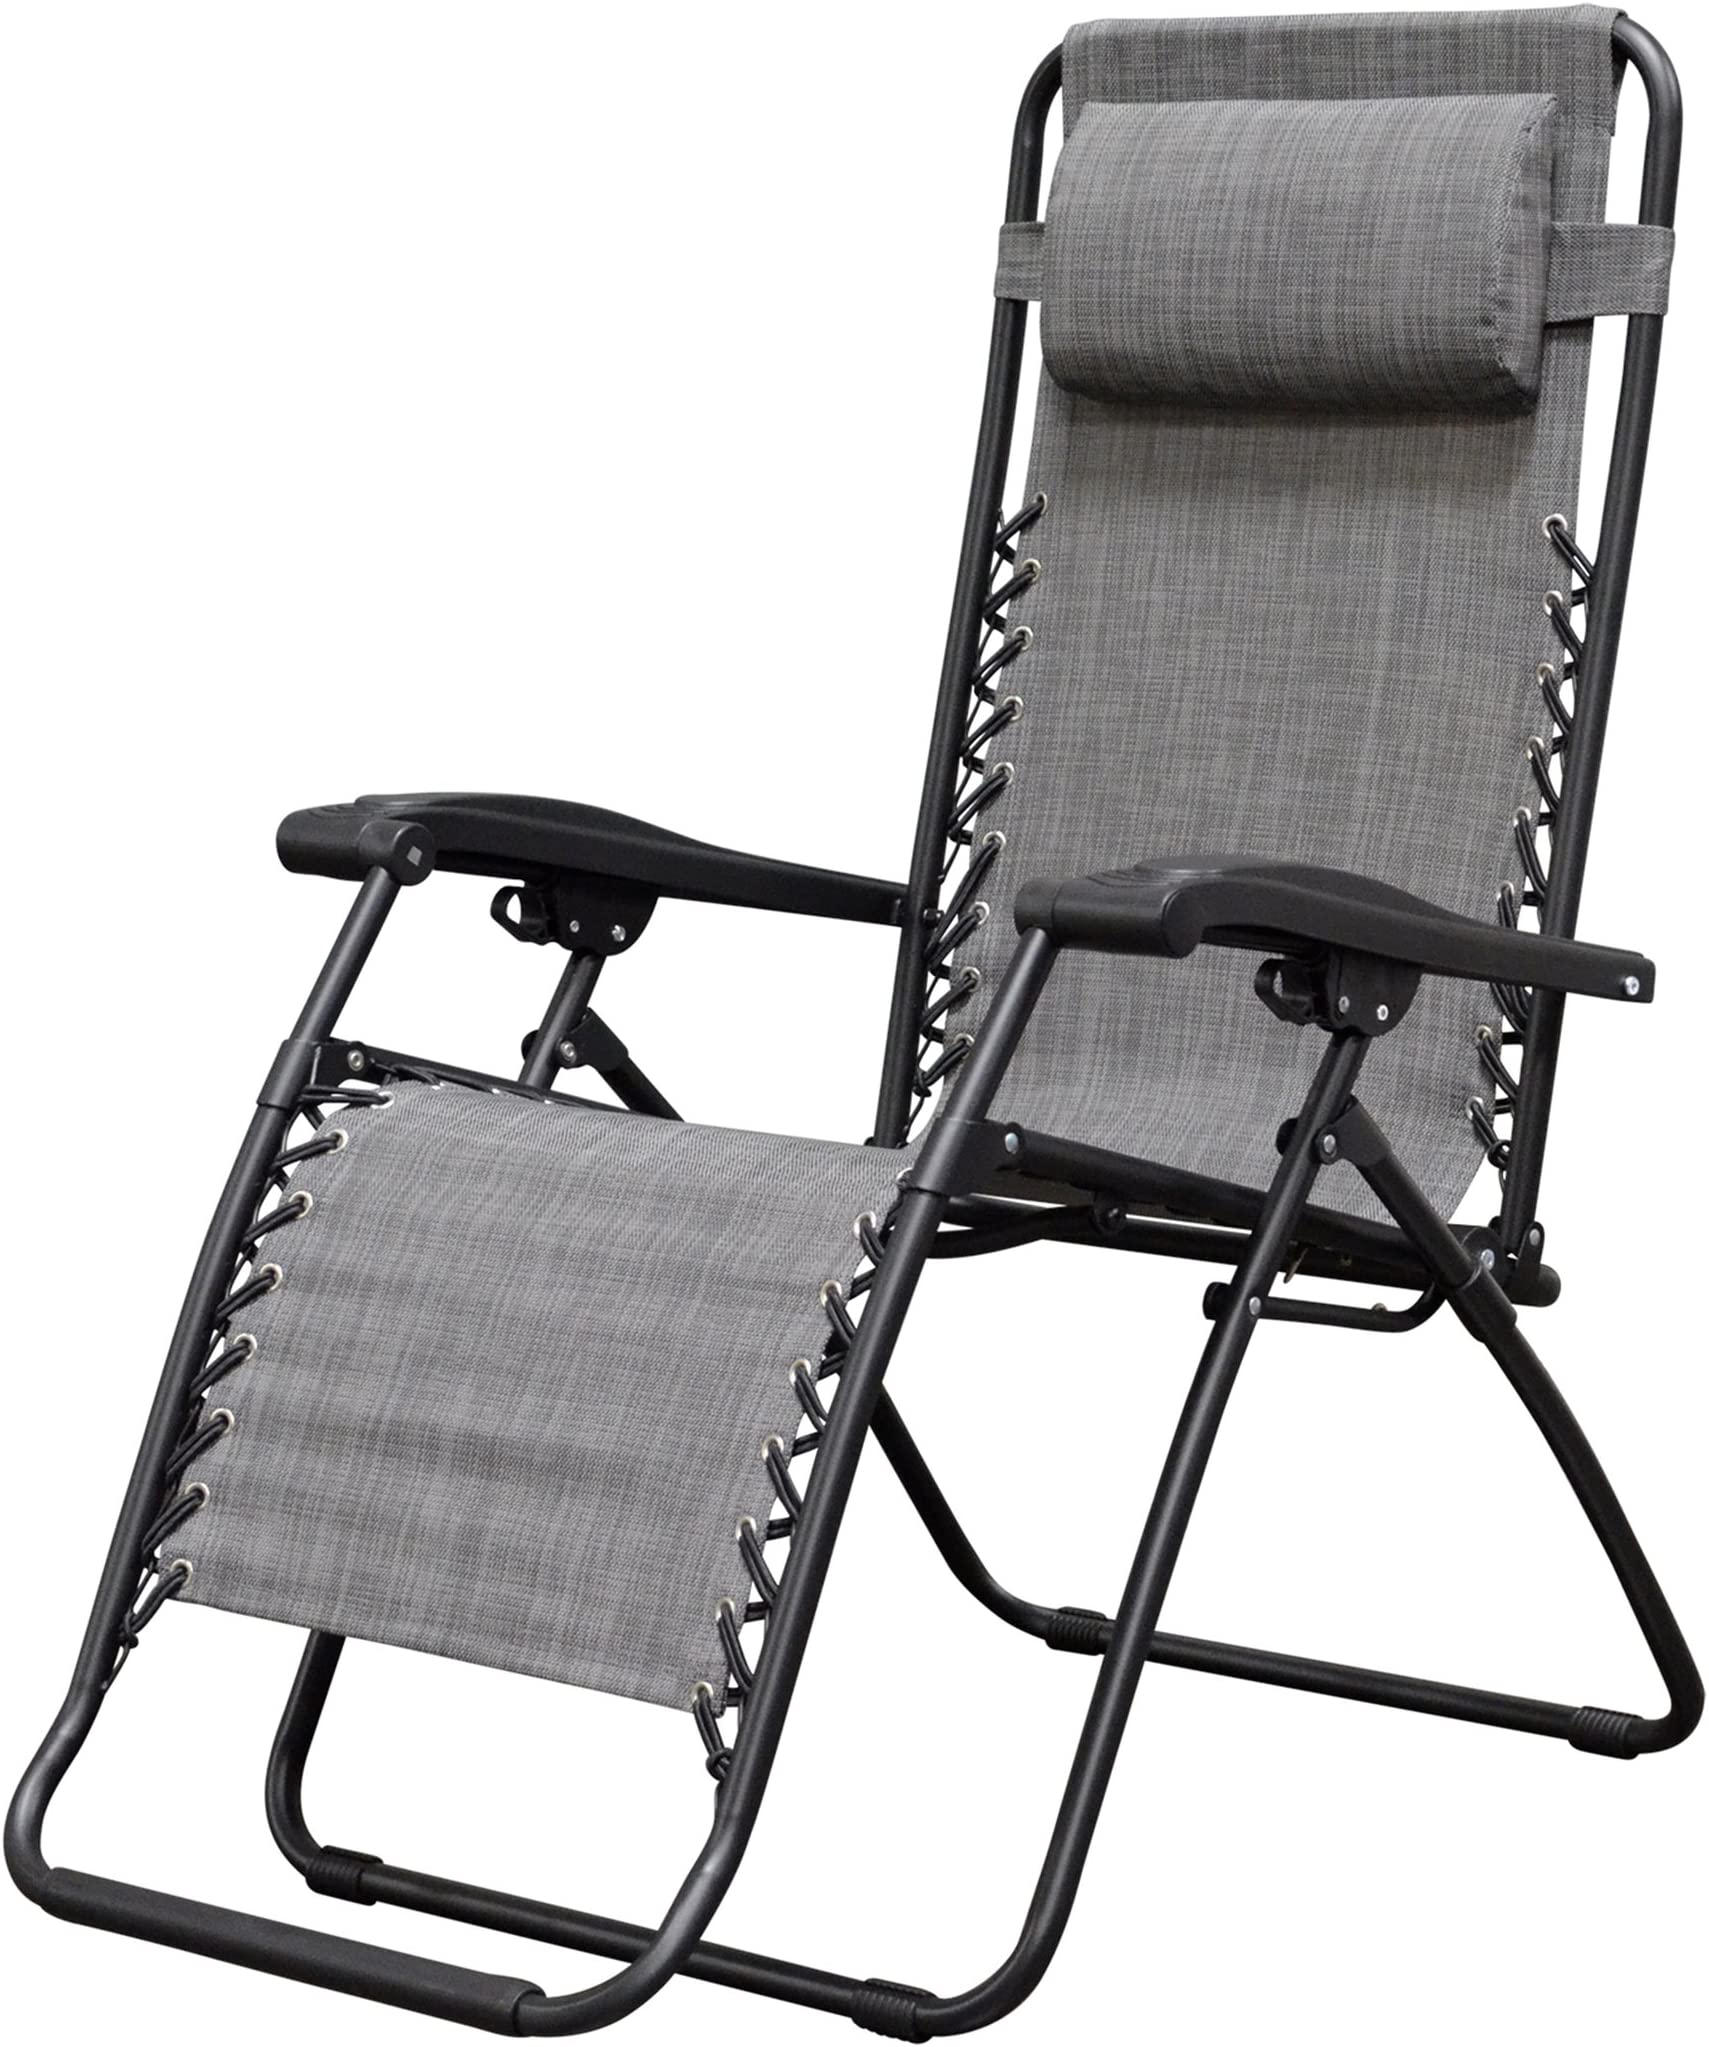 reclining patio chairs amazon com rh amazon com outdoor chair recliner outdoor furniture recliner chair